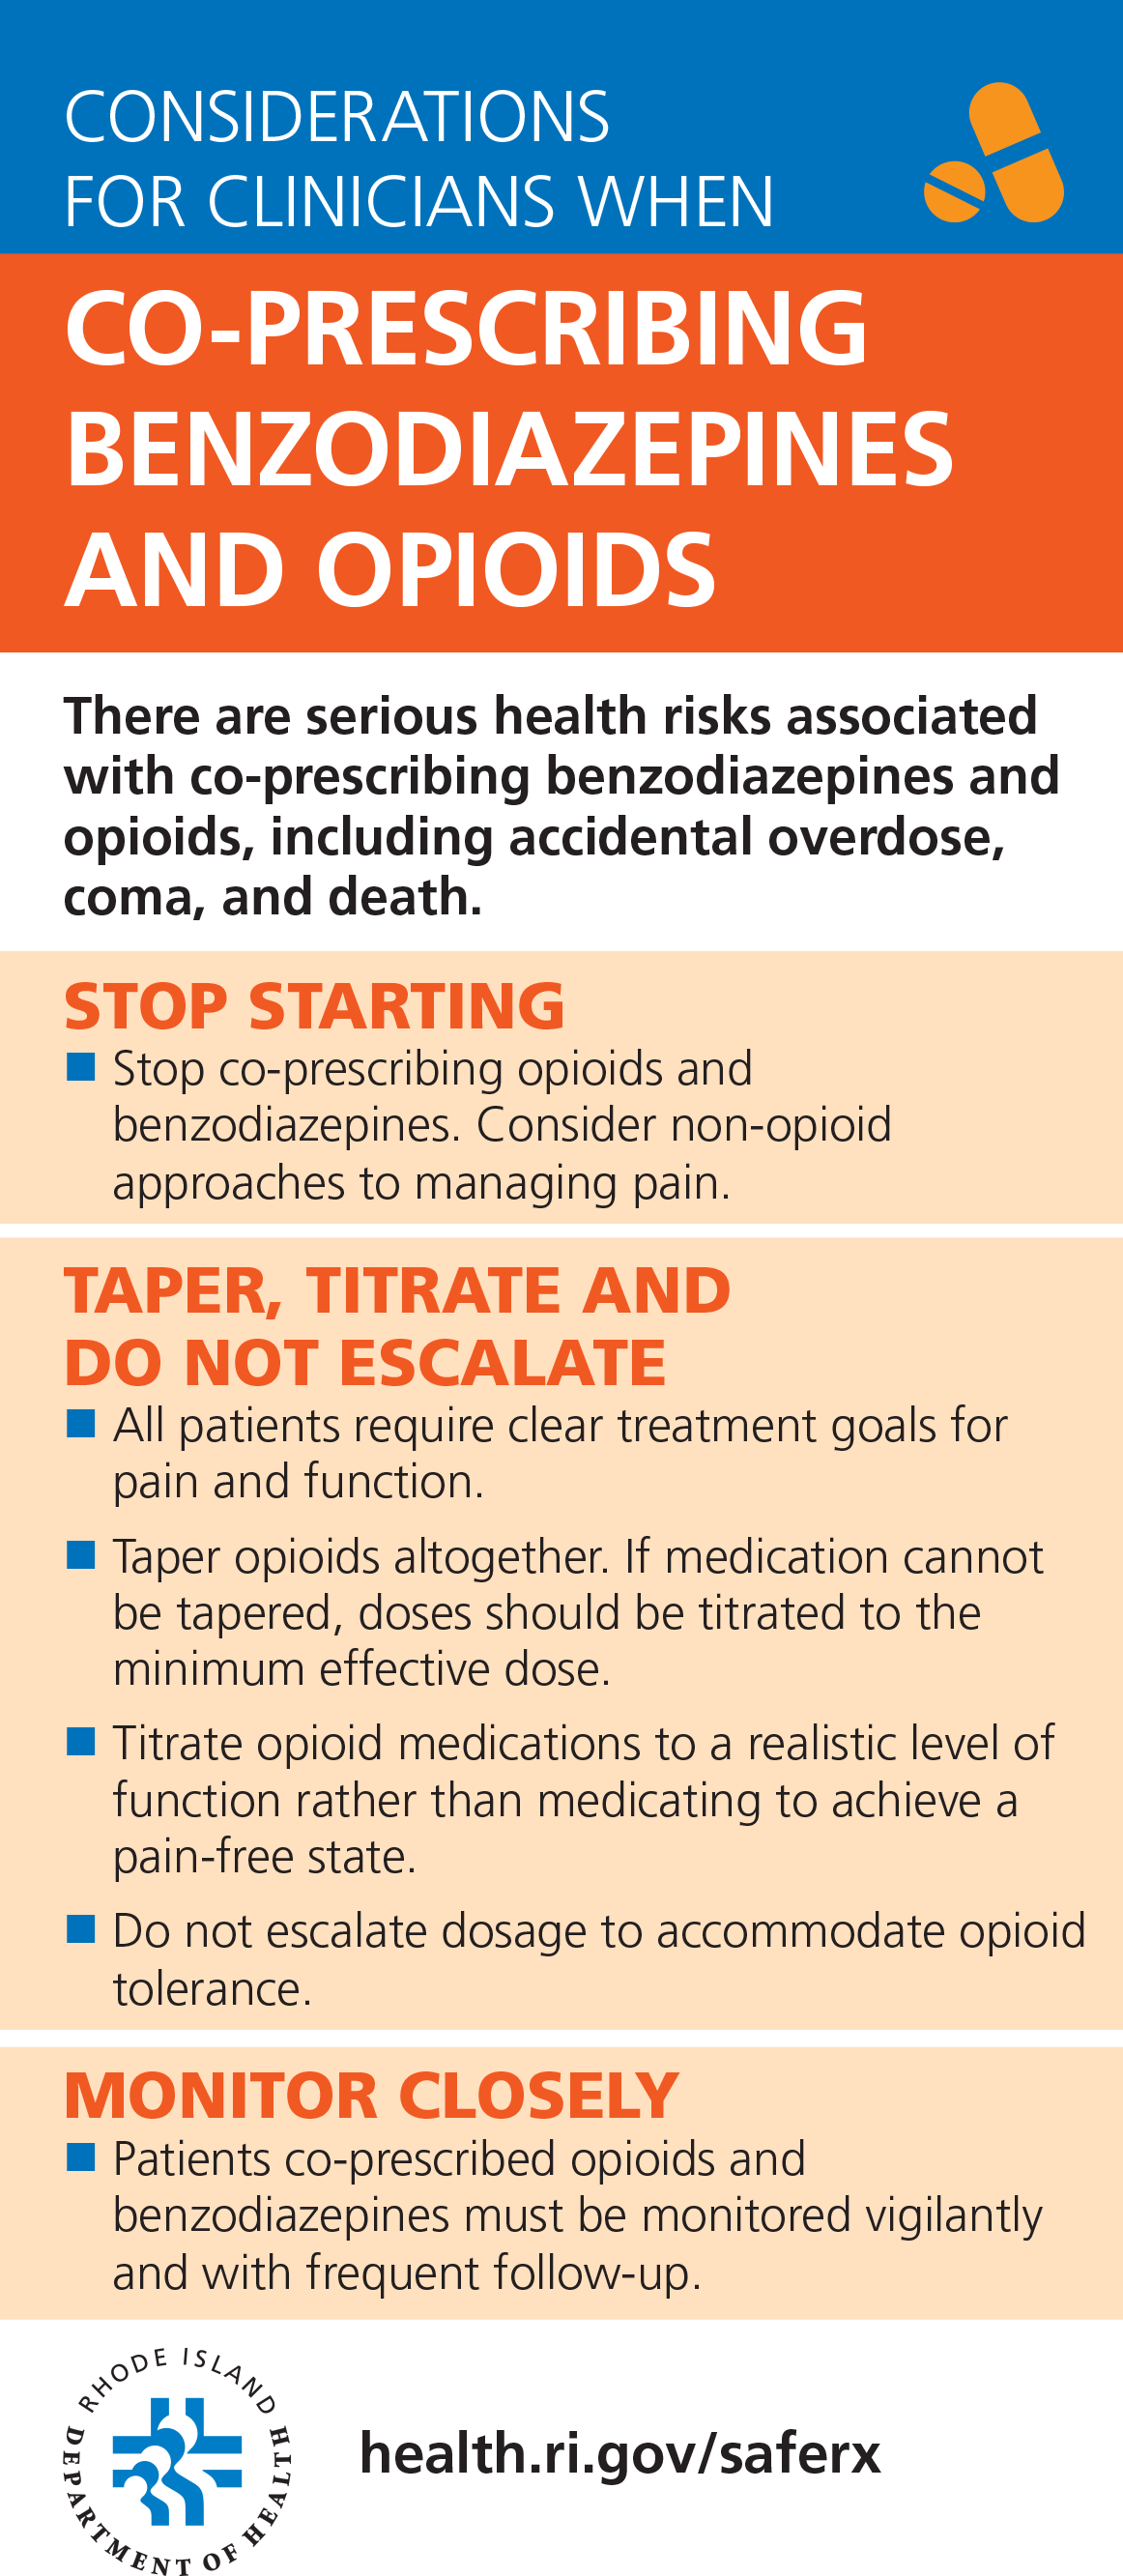 Considerations for Clinicians when co-prescribing Benzodiazepines and Opioids